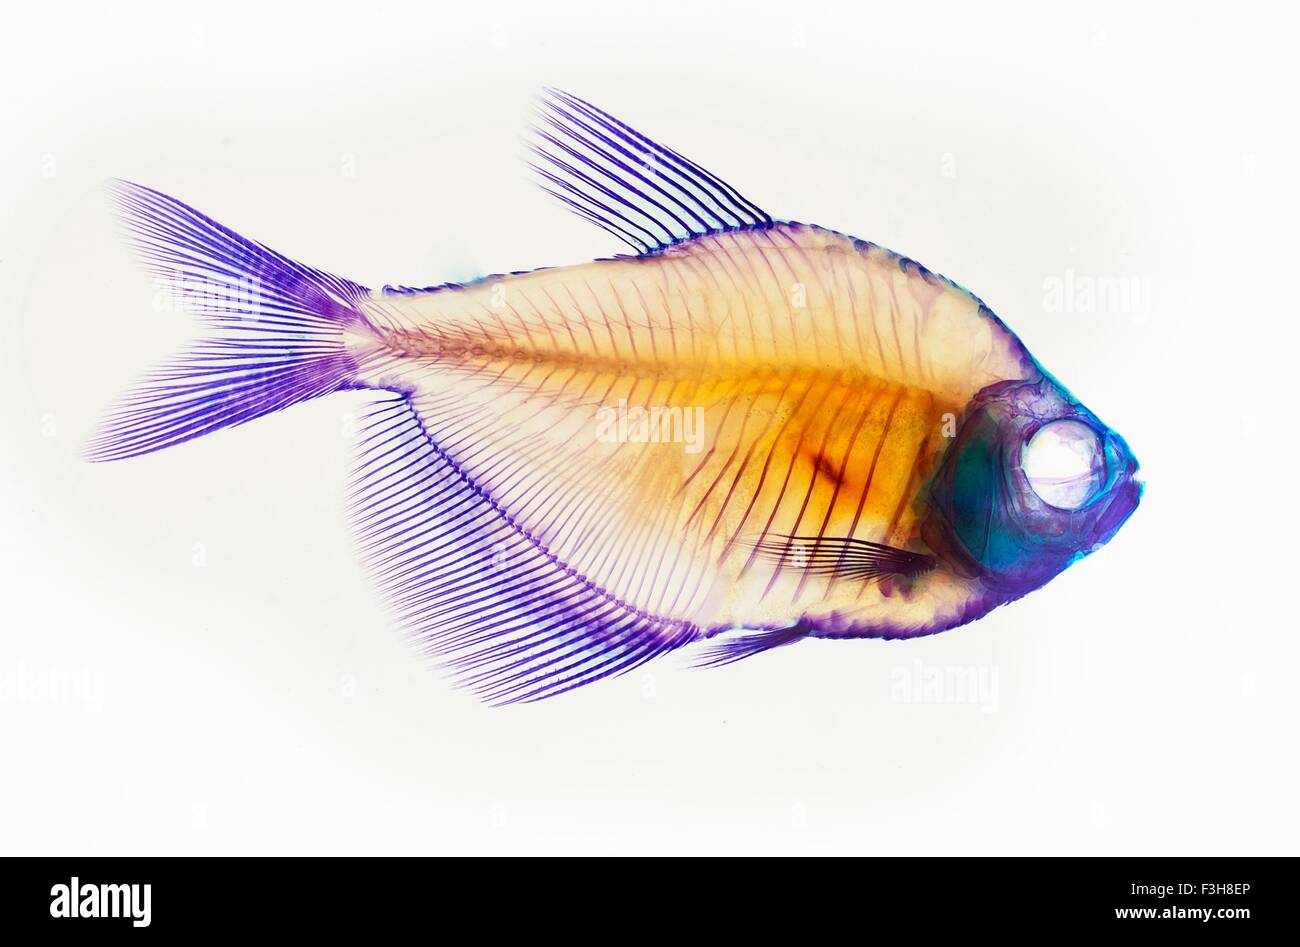 Alizarin red bone stain anatomical fish skeleton preparation of a white finned tetra stock image